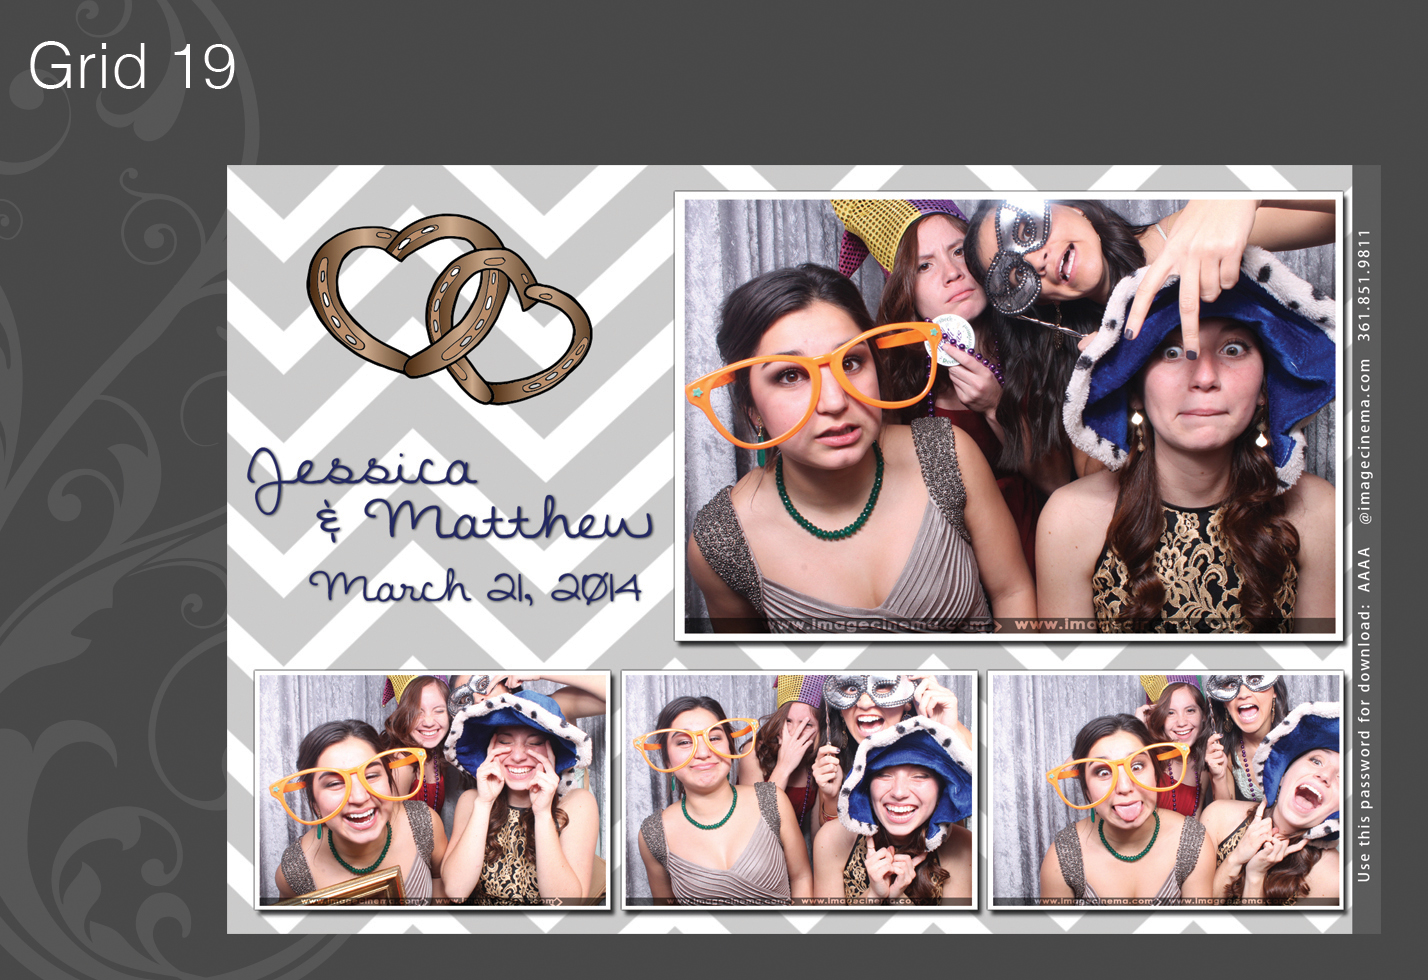 Photo Booth Grid 19